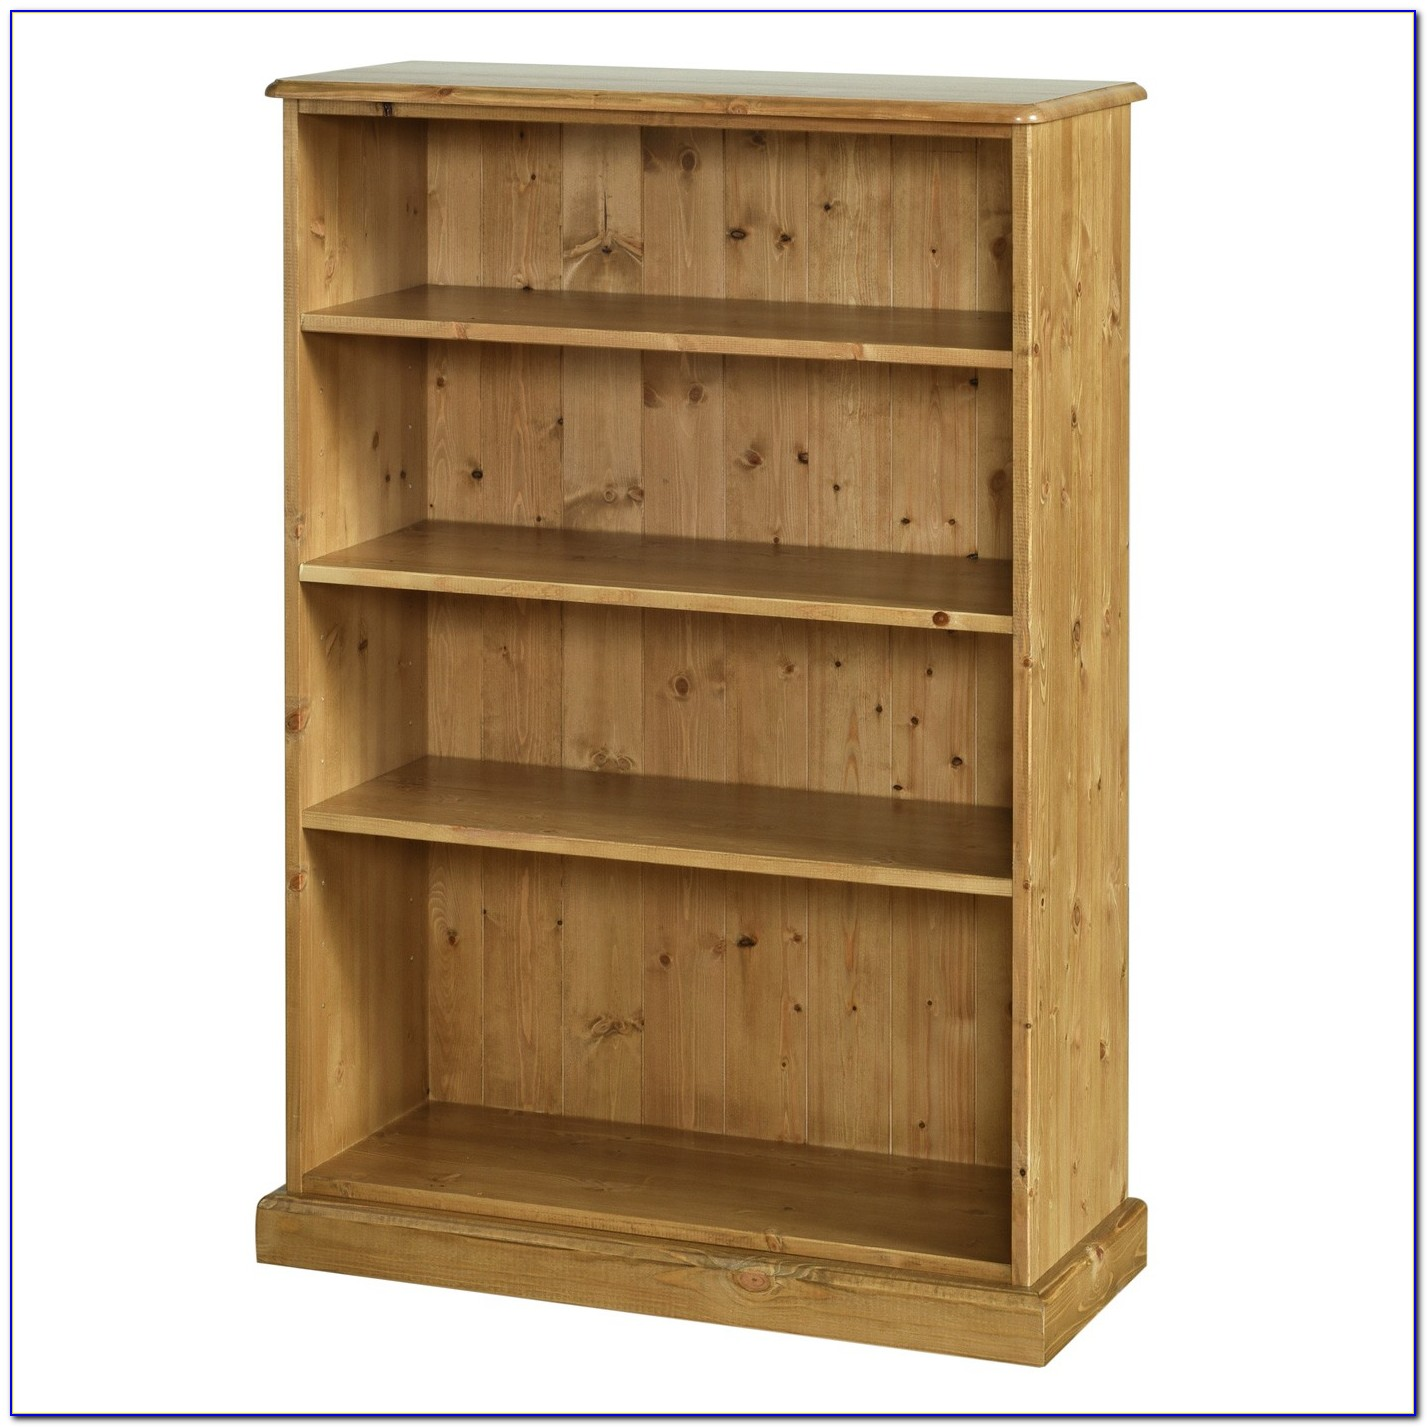 Bookcase 12 Inch Depth